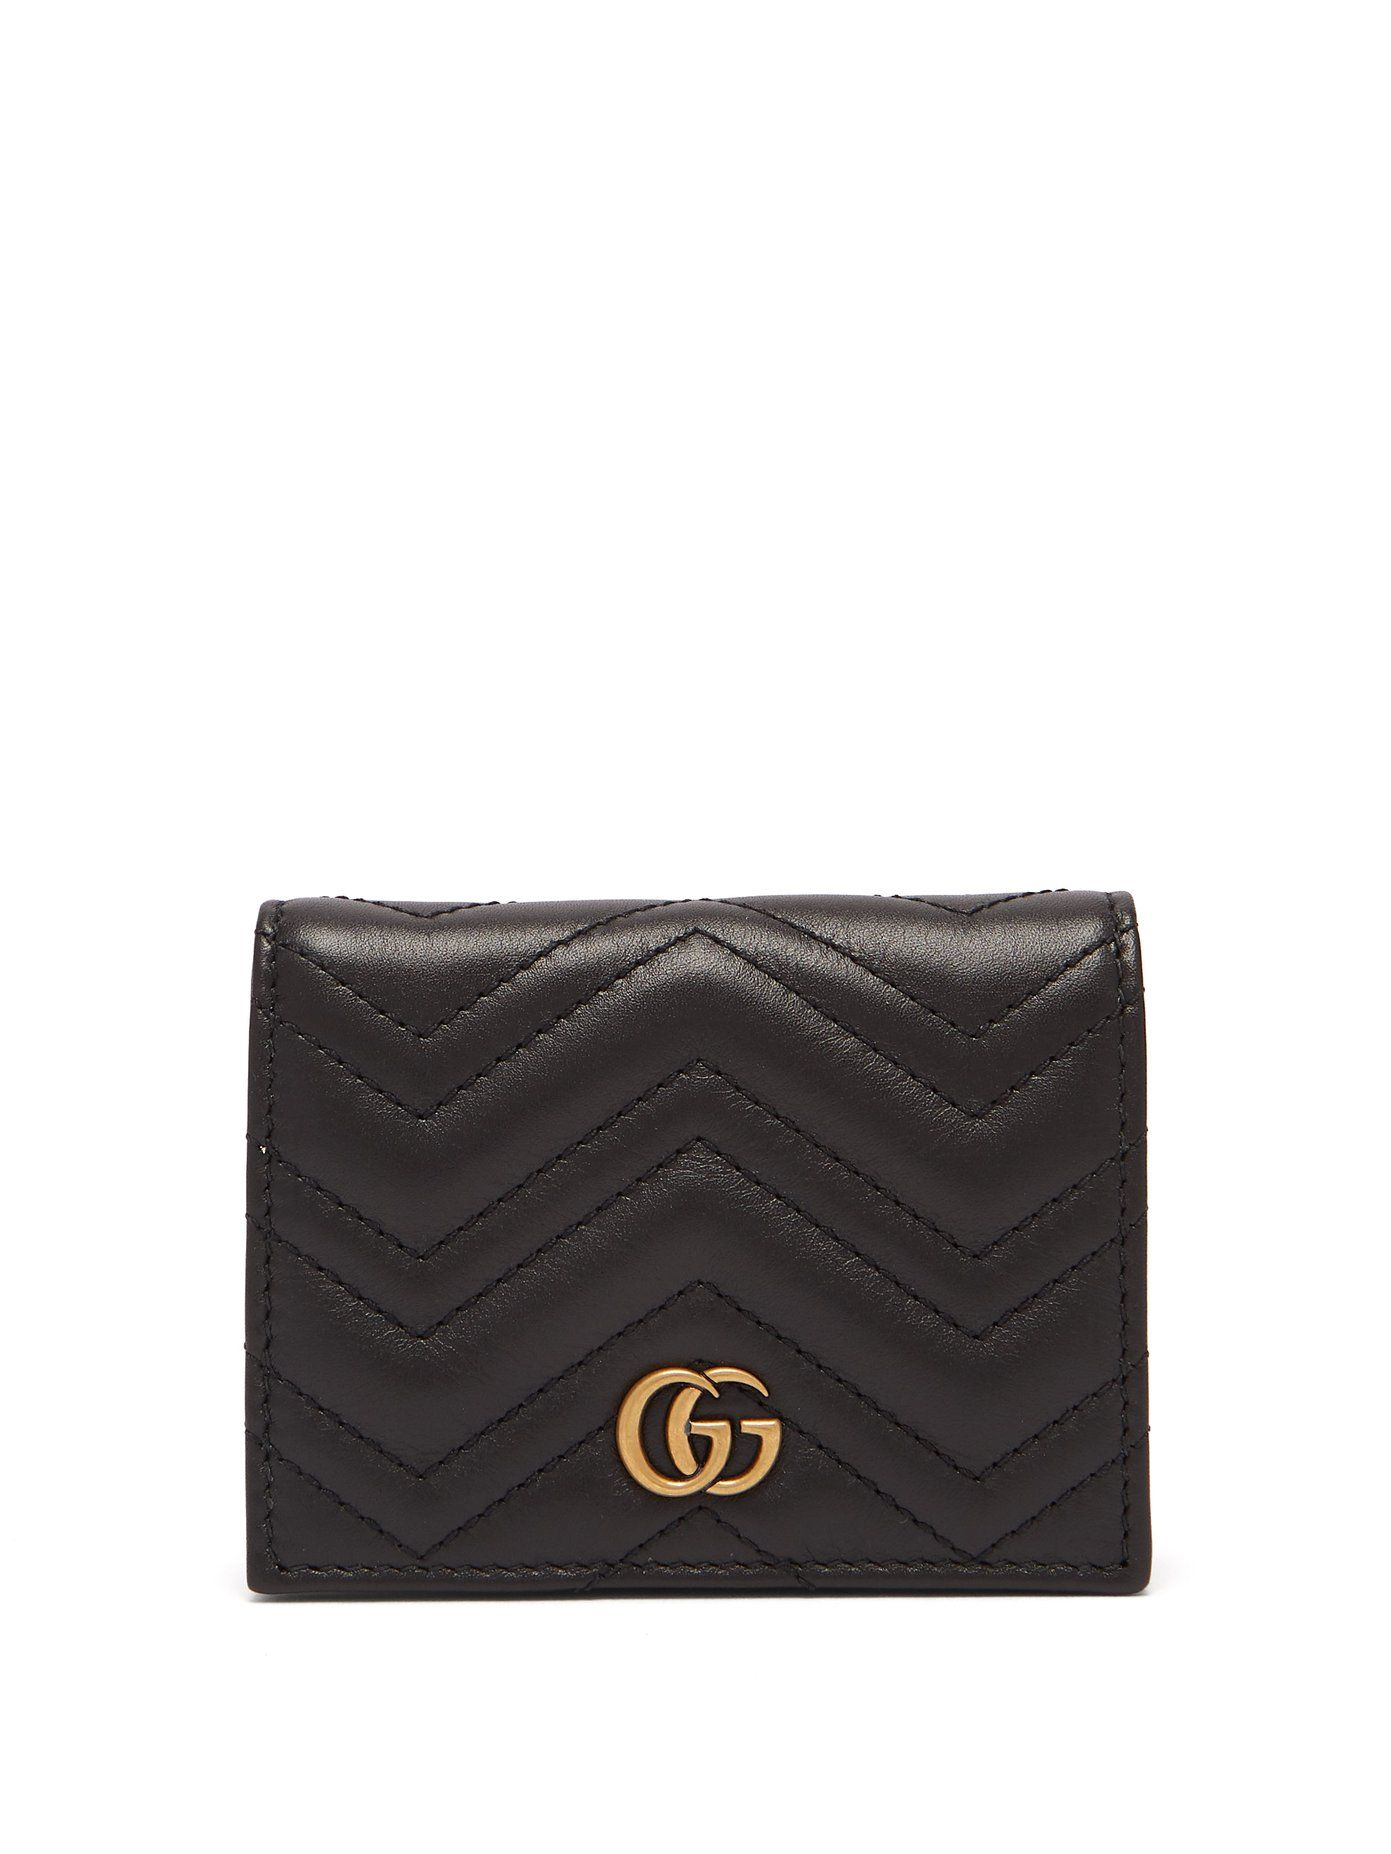 b7da080b897179 GG Marmont quilted-leather wallet | Gucci | MATCHESFASHION.COM ...